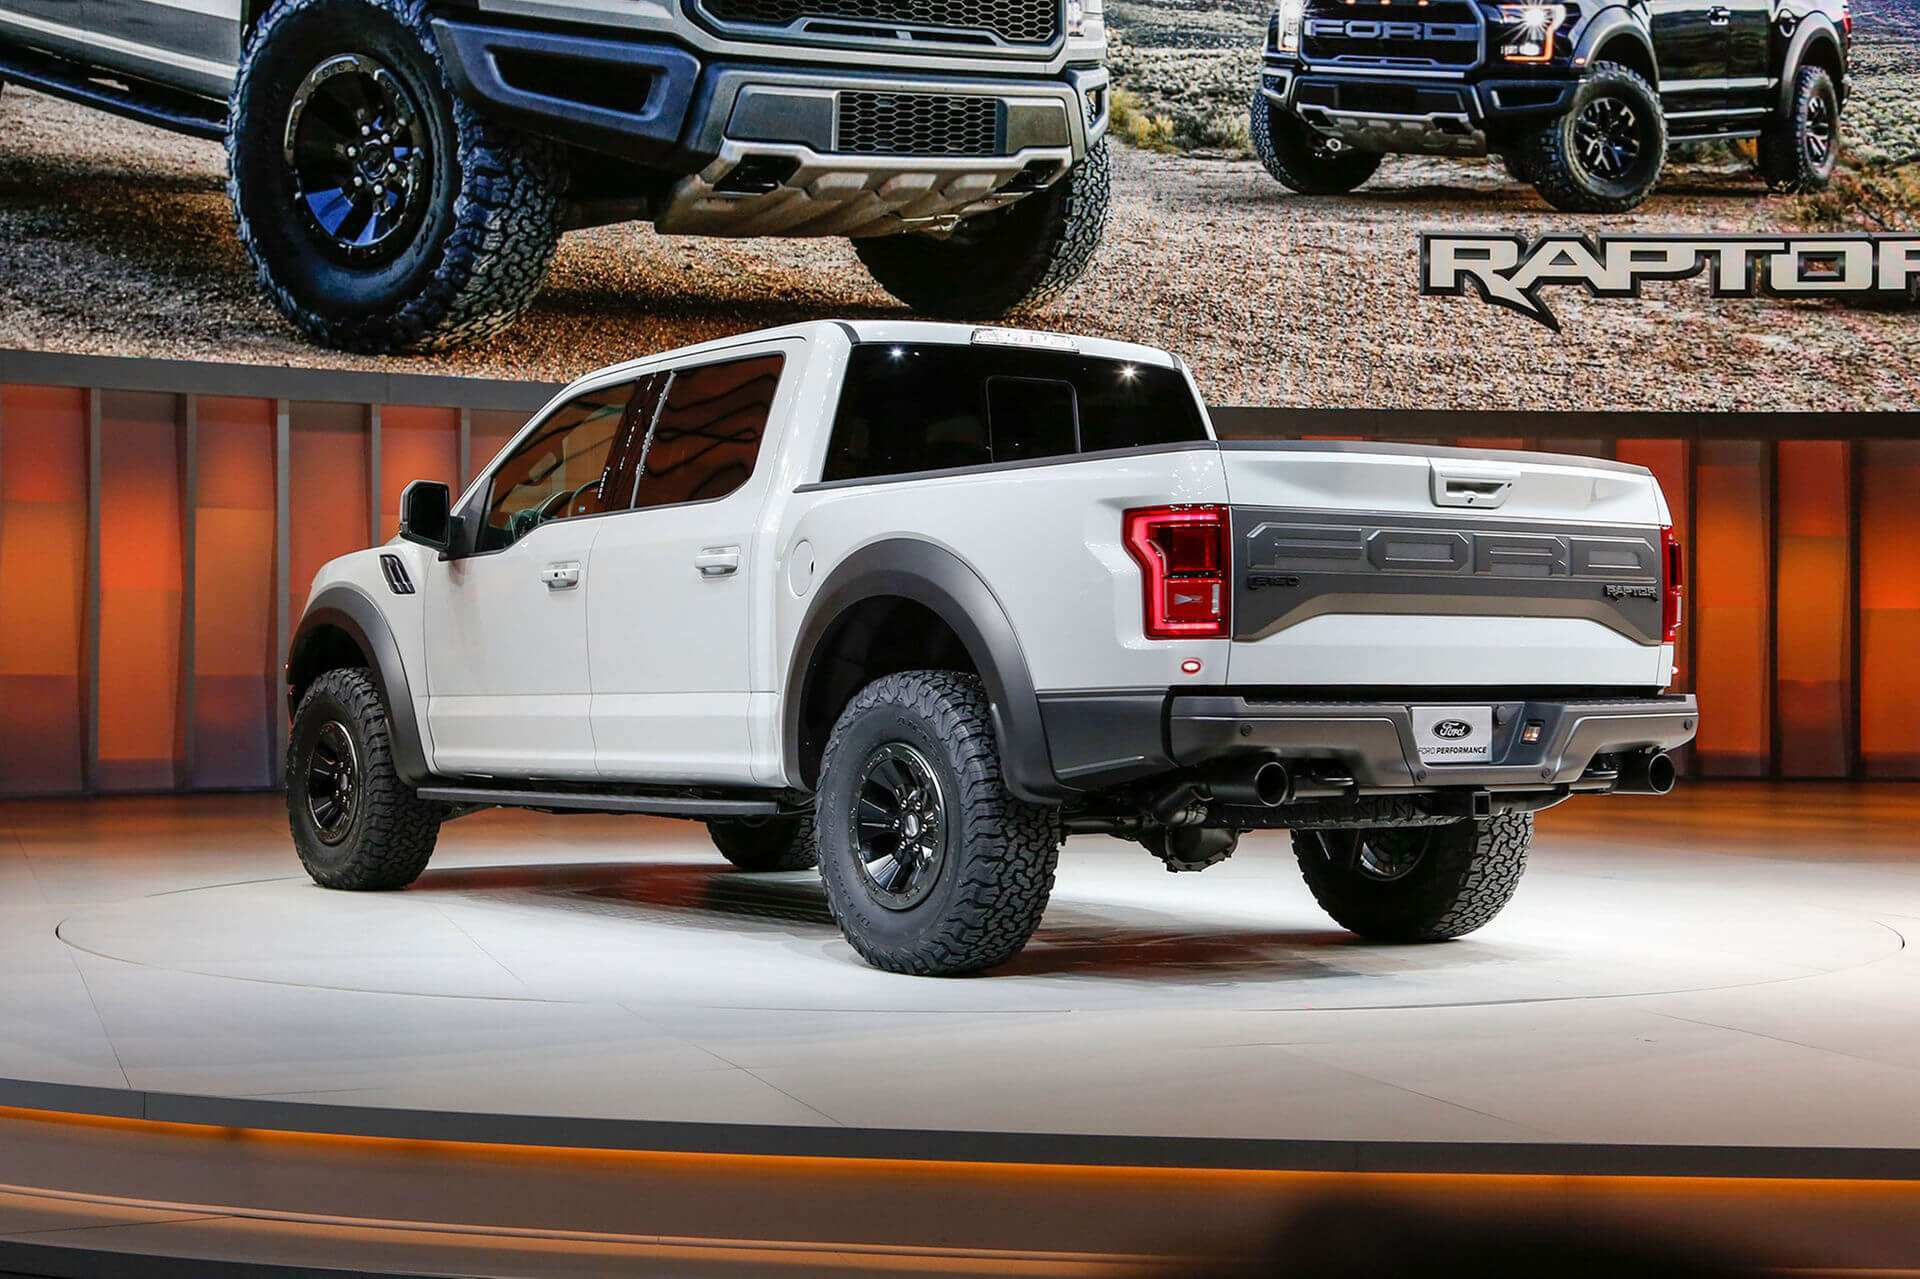 46 All New 2020 Ford F150 Raptor Mpg Exterior